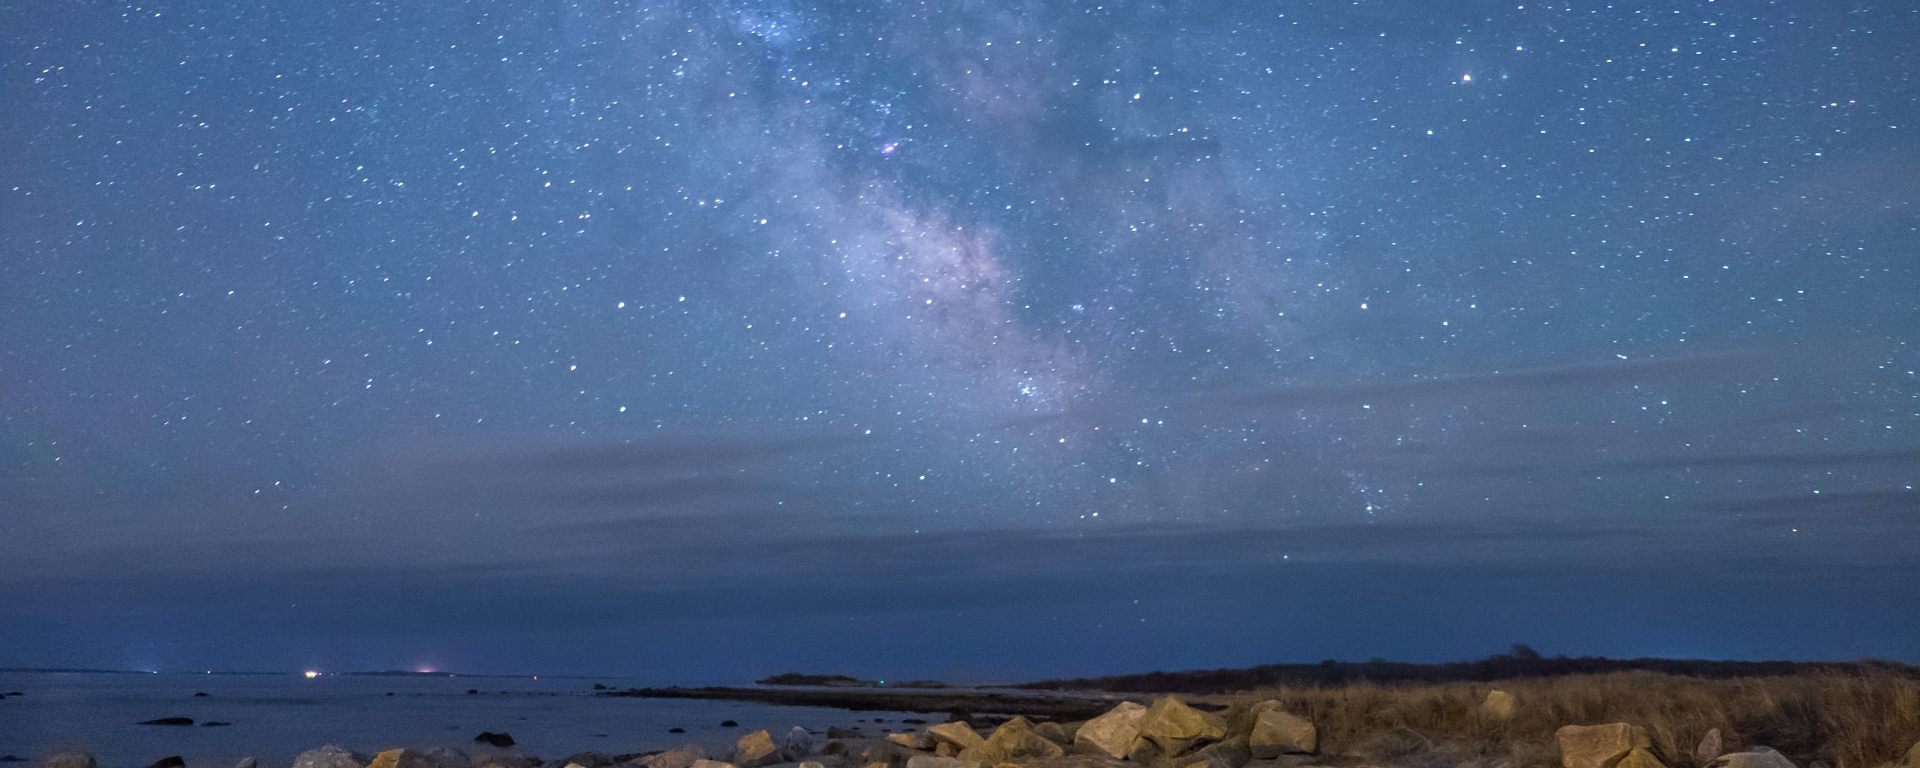 The Milky Way Galaxy over Gooseberry Island in Westport, Massachusetts.